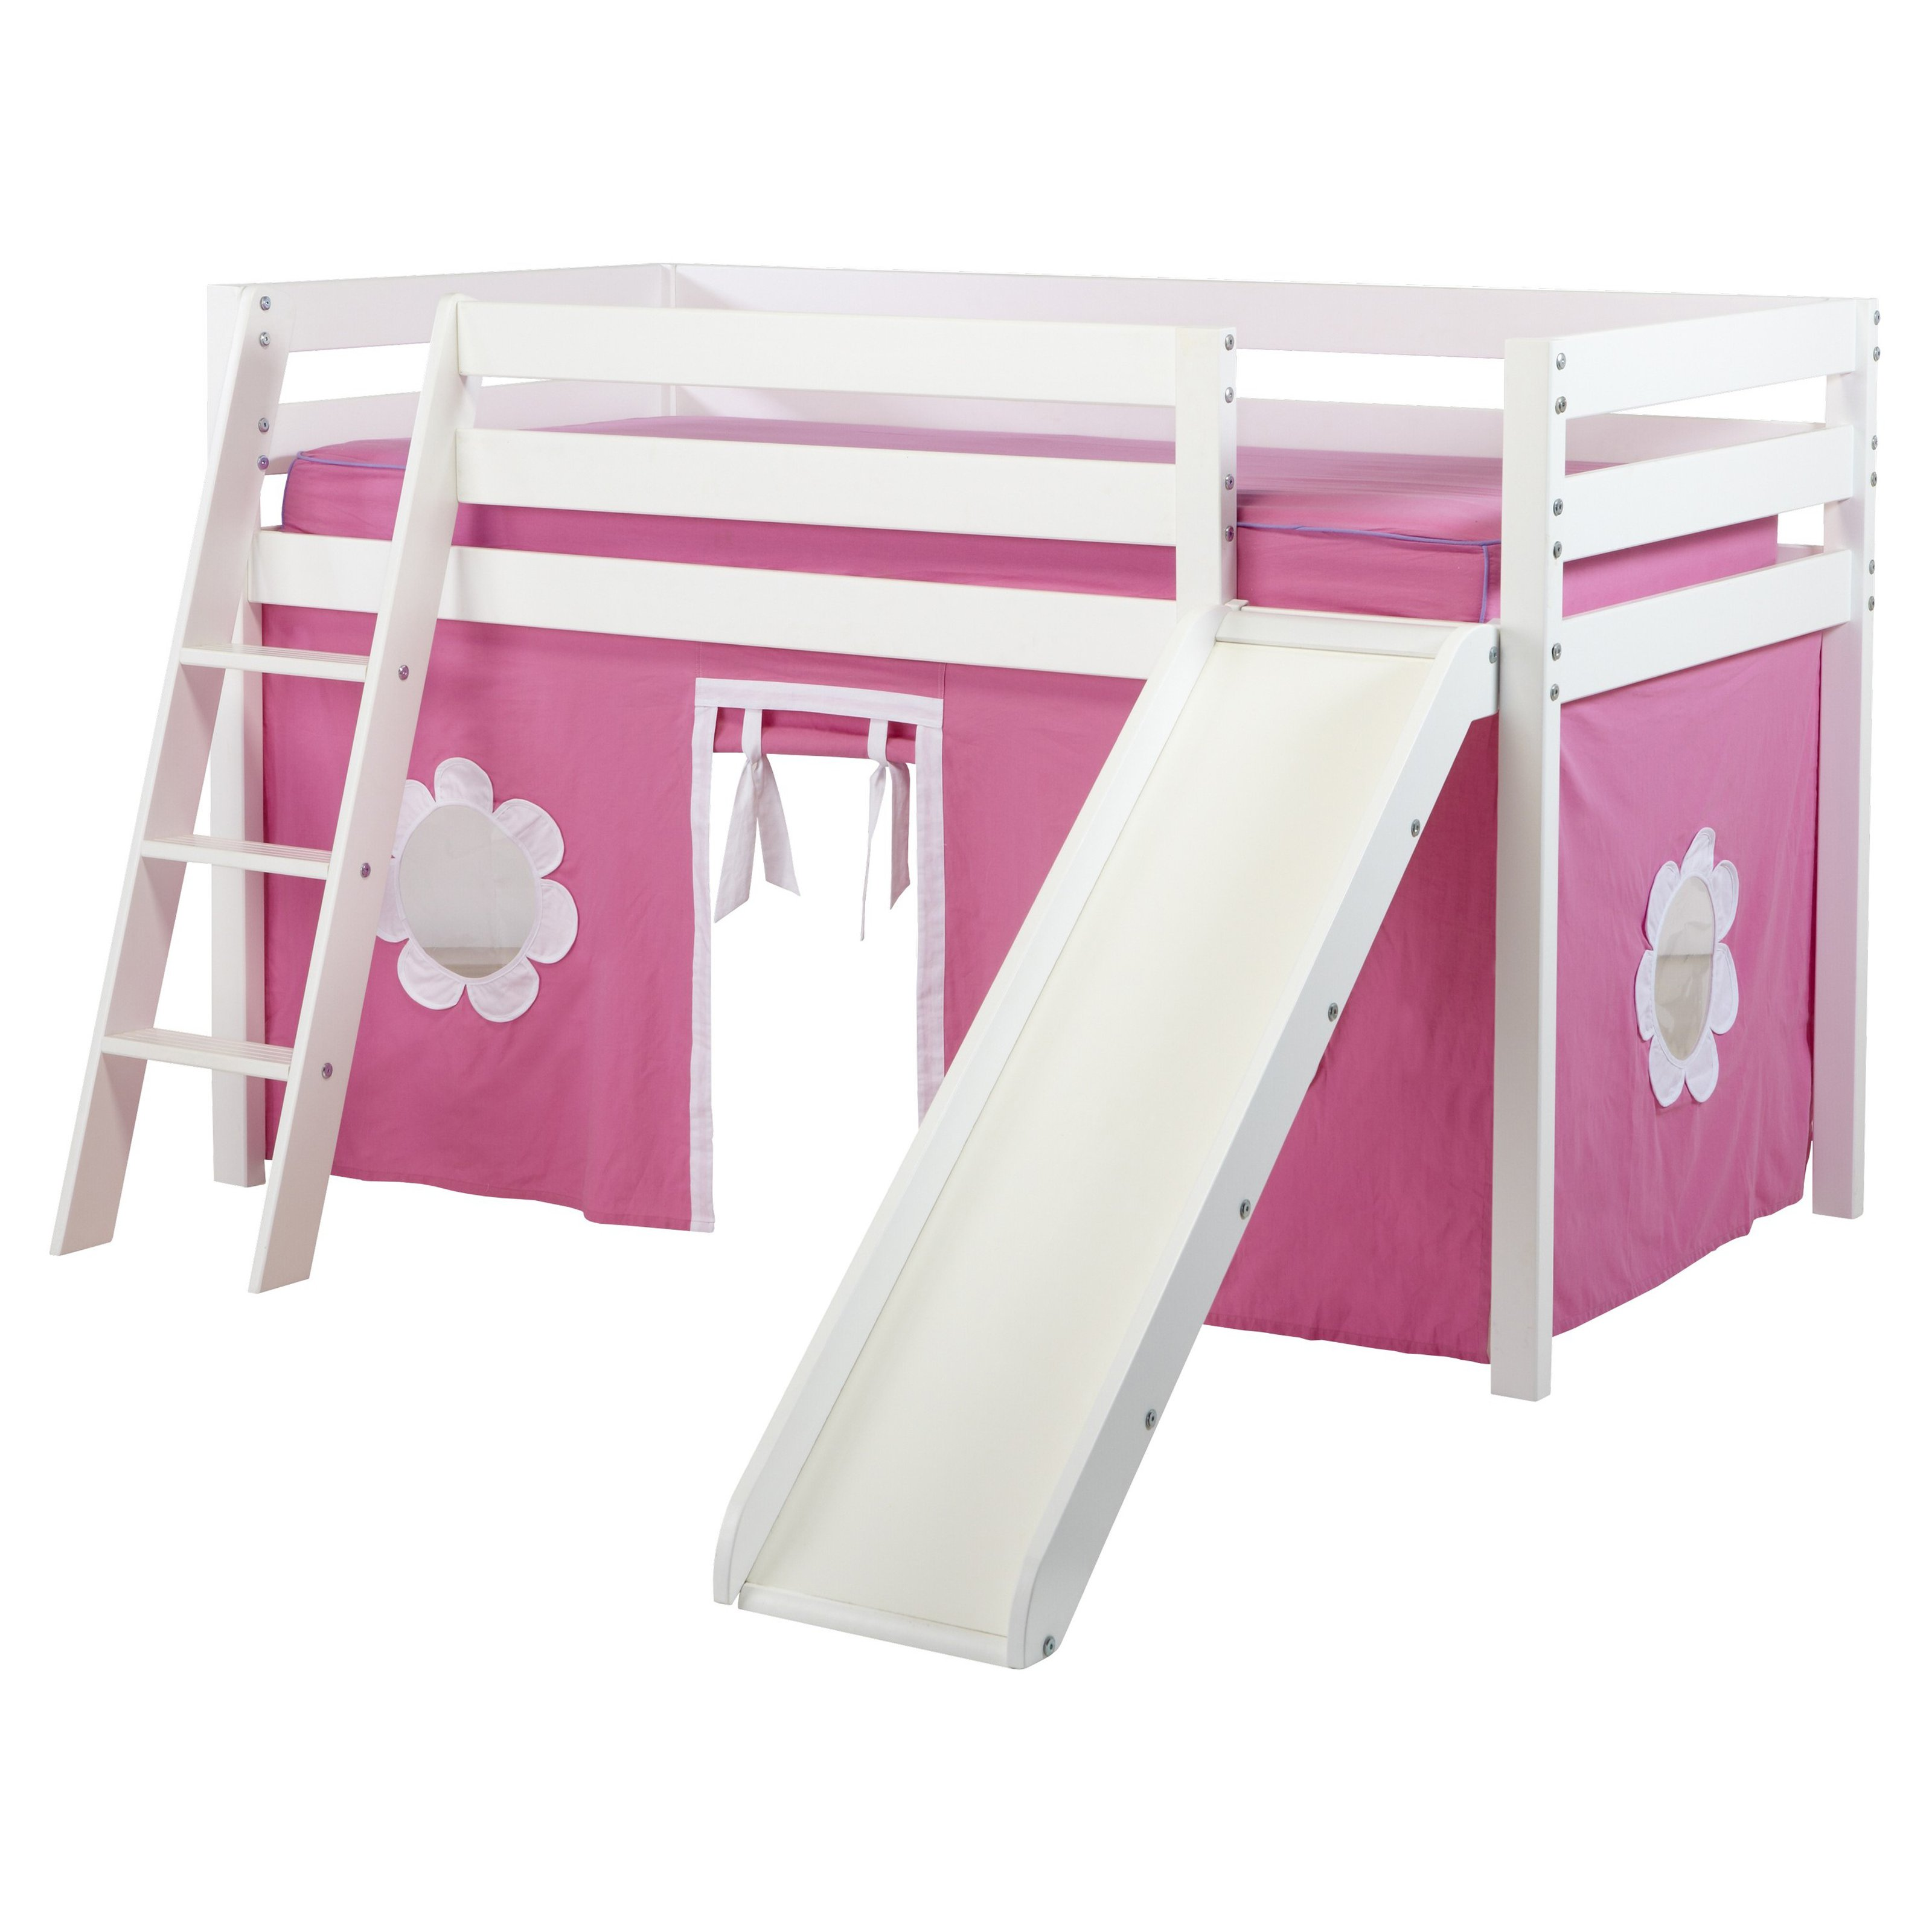 Twin Bed With Slide Part - 19: Maxwood Furniture Jackpot Twin Low Loft Bed With Angled Ladder / Slide /  Curtains - Walmart.com